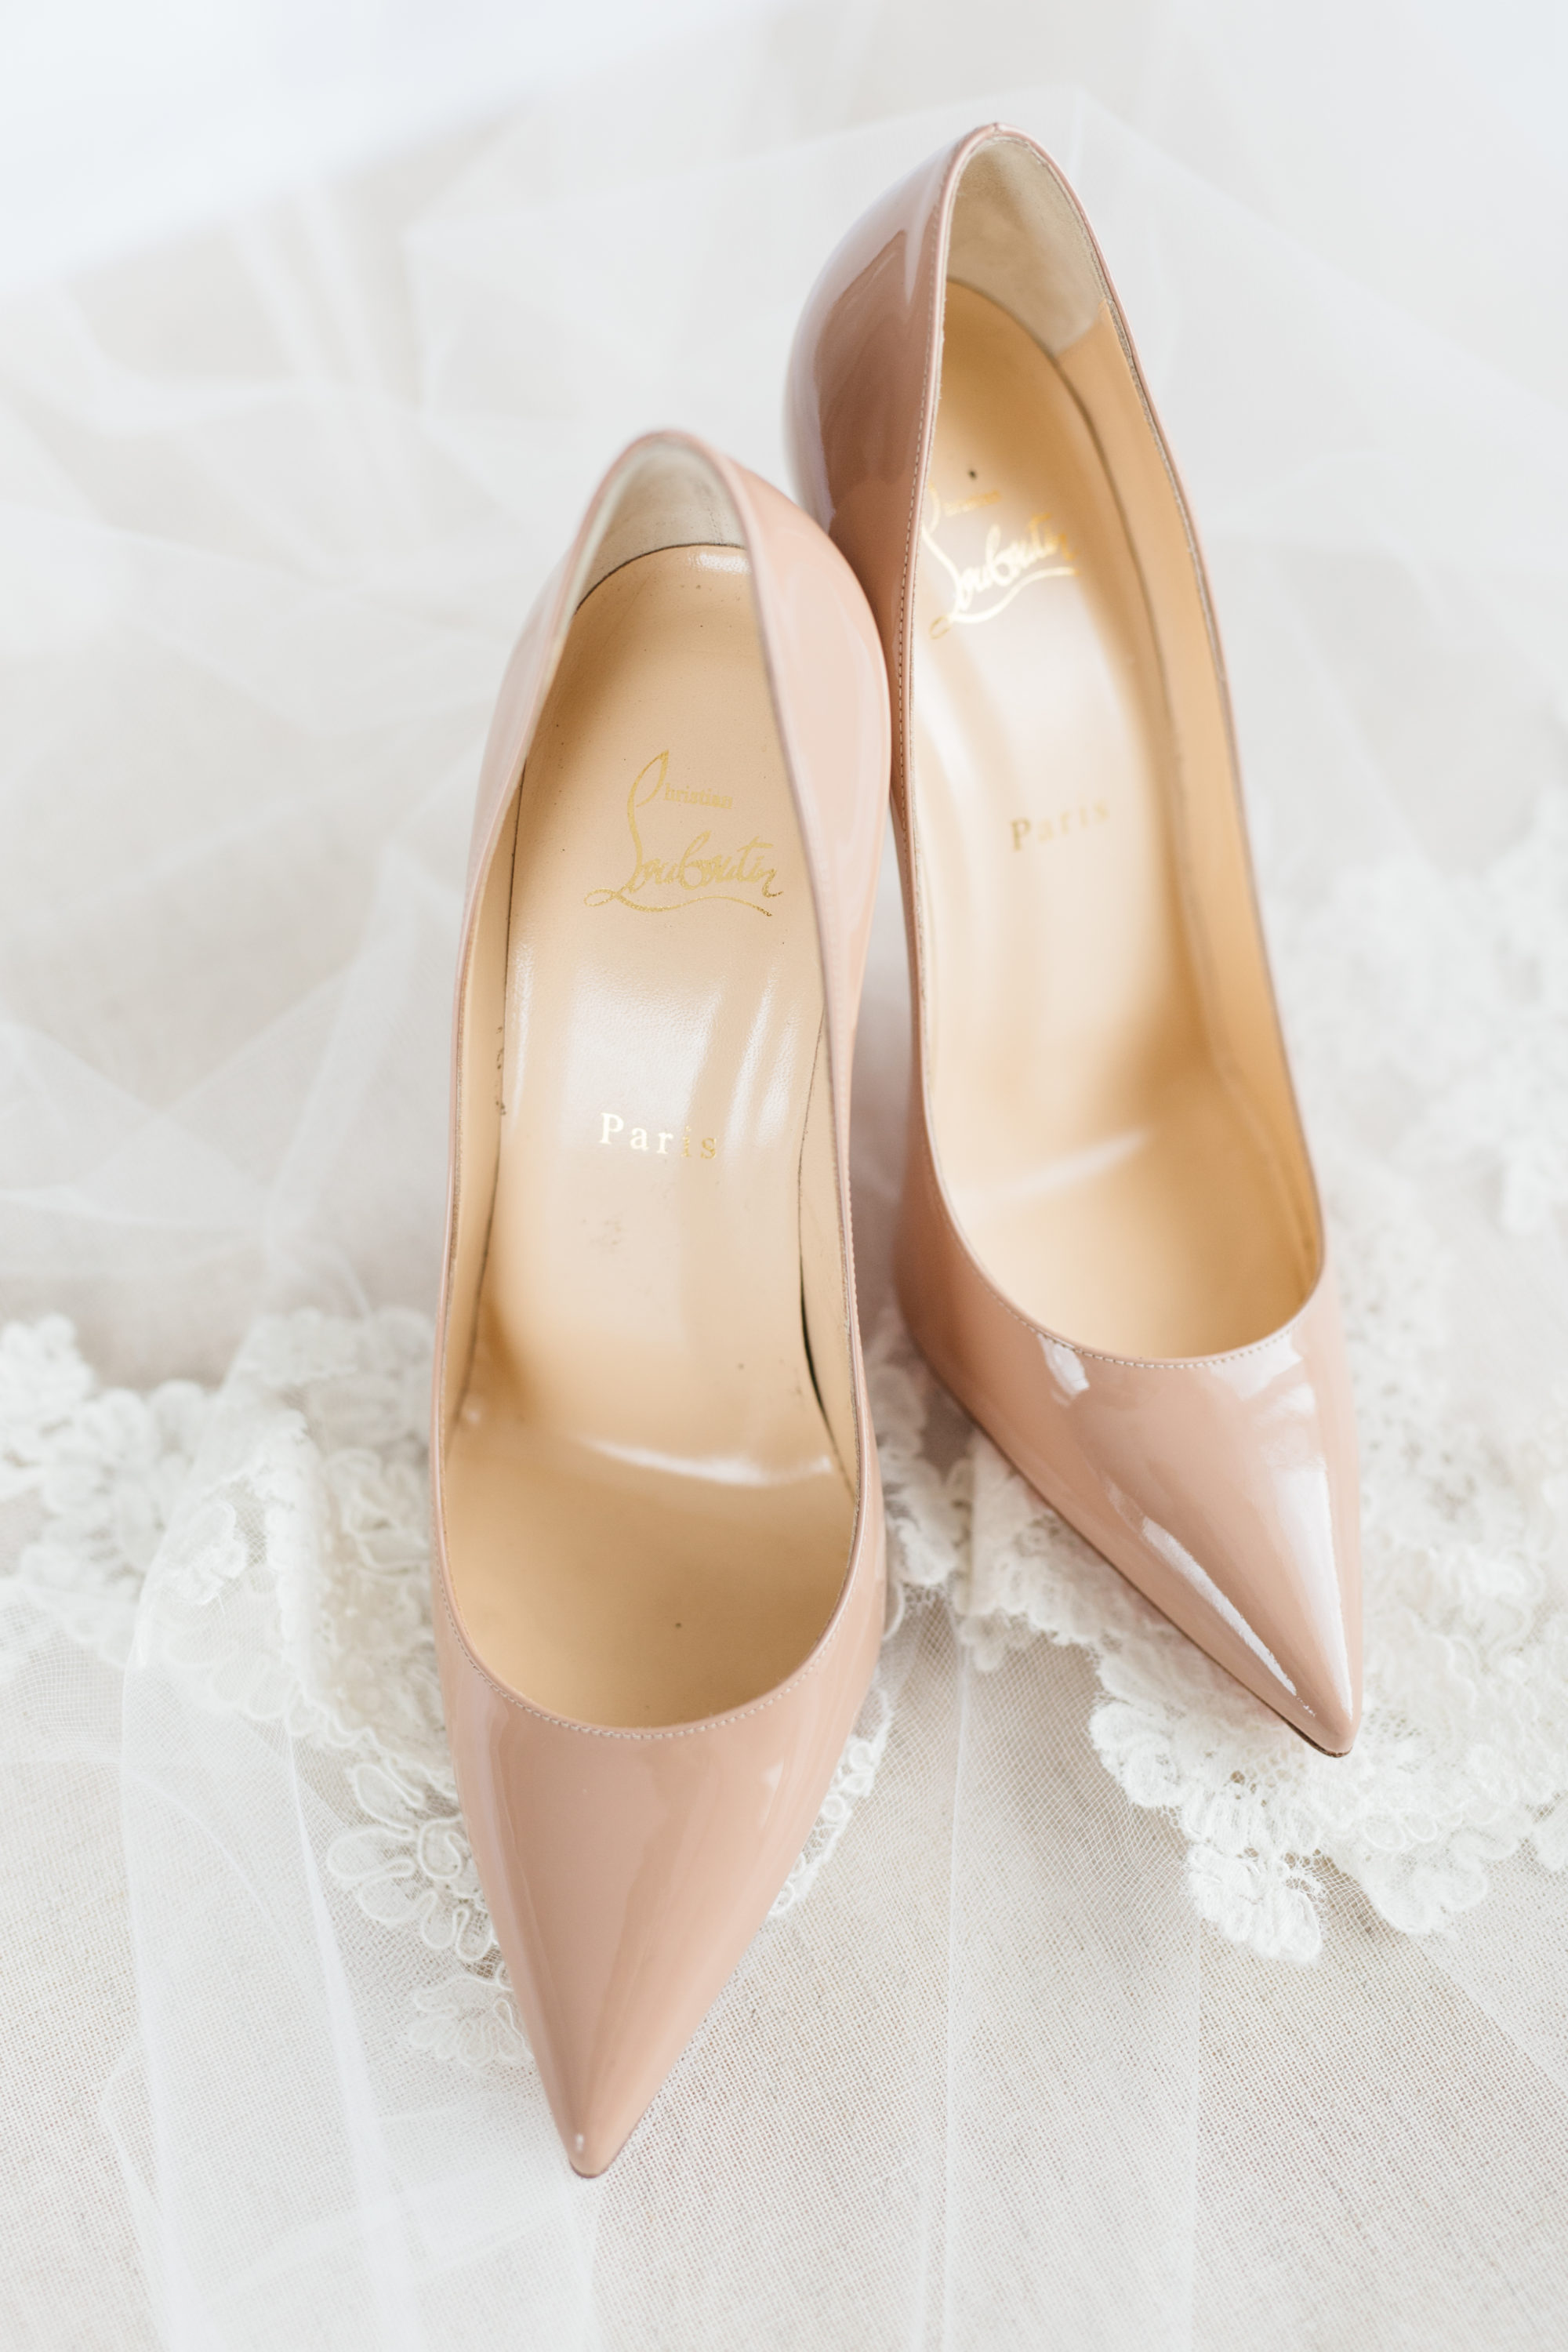 Bride's Louboutin wedding shoes